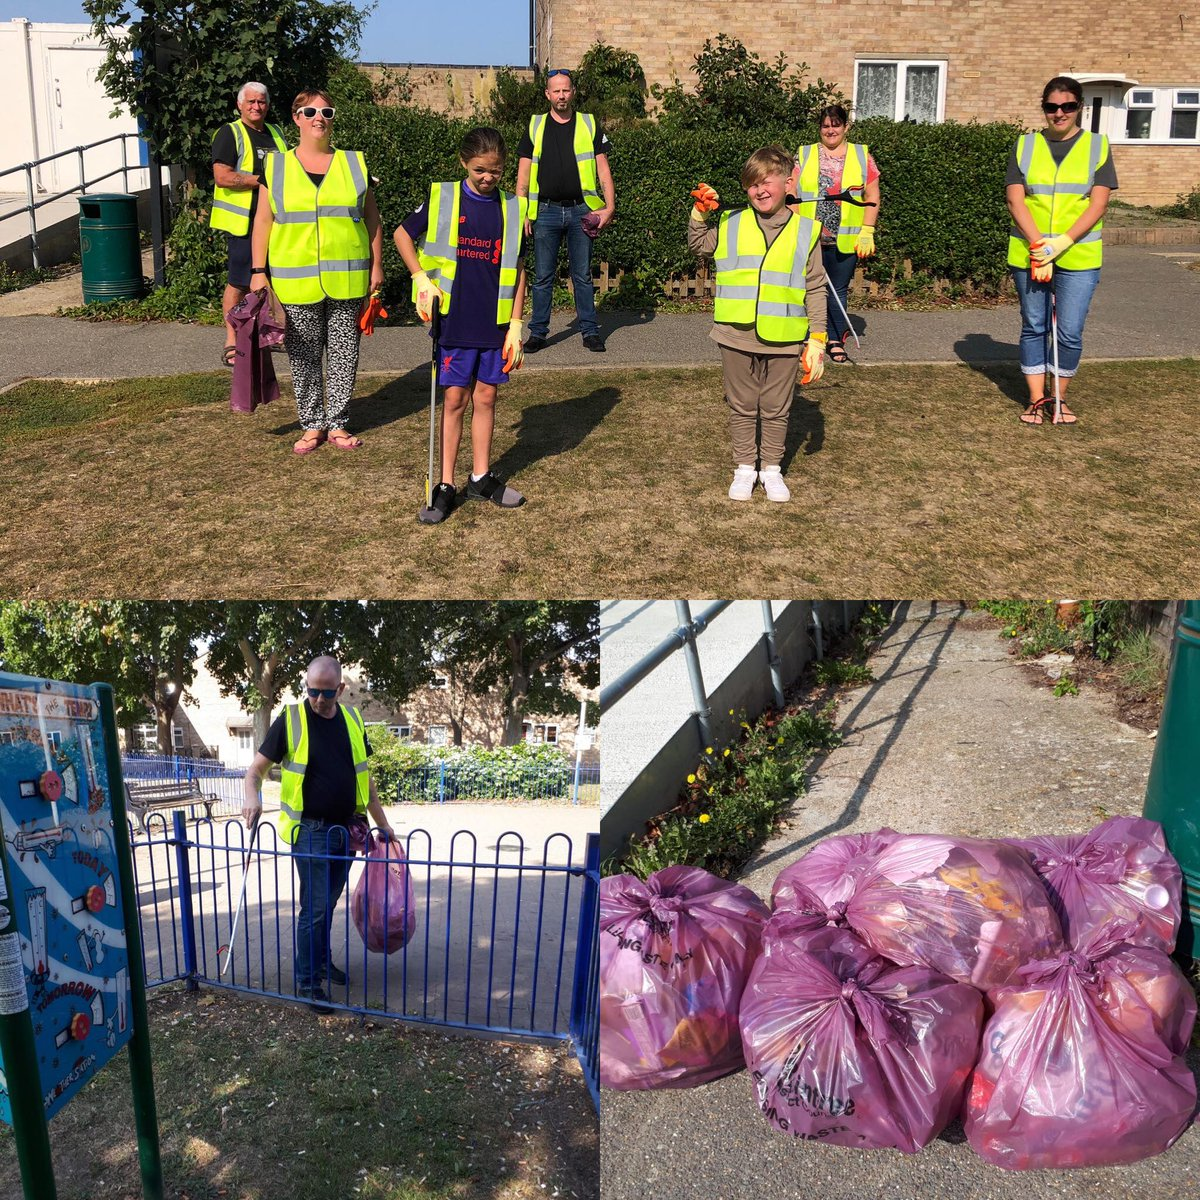 A HUGE thank you to Templar's Community Association for organising a litter pick & collecting these bags of waste in their local area.  An absolutely awesome effort which we appreciate so much 💚🙏  #GBSeptemberClean #litterheroes @KeepBritainTidy https://t.co/QXeig23M7j